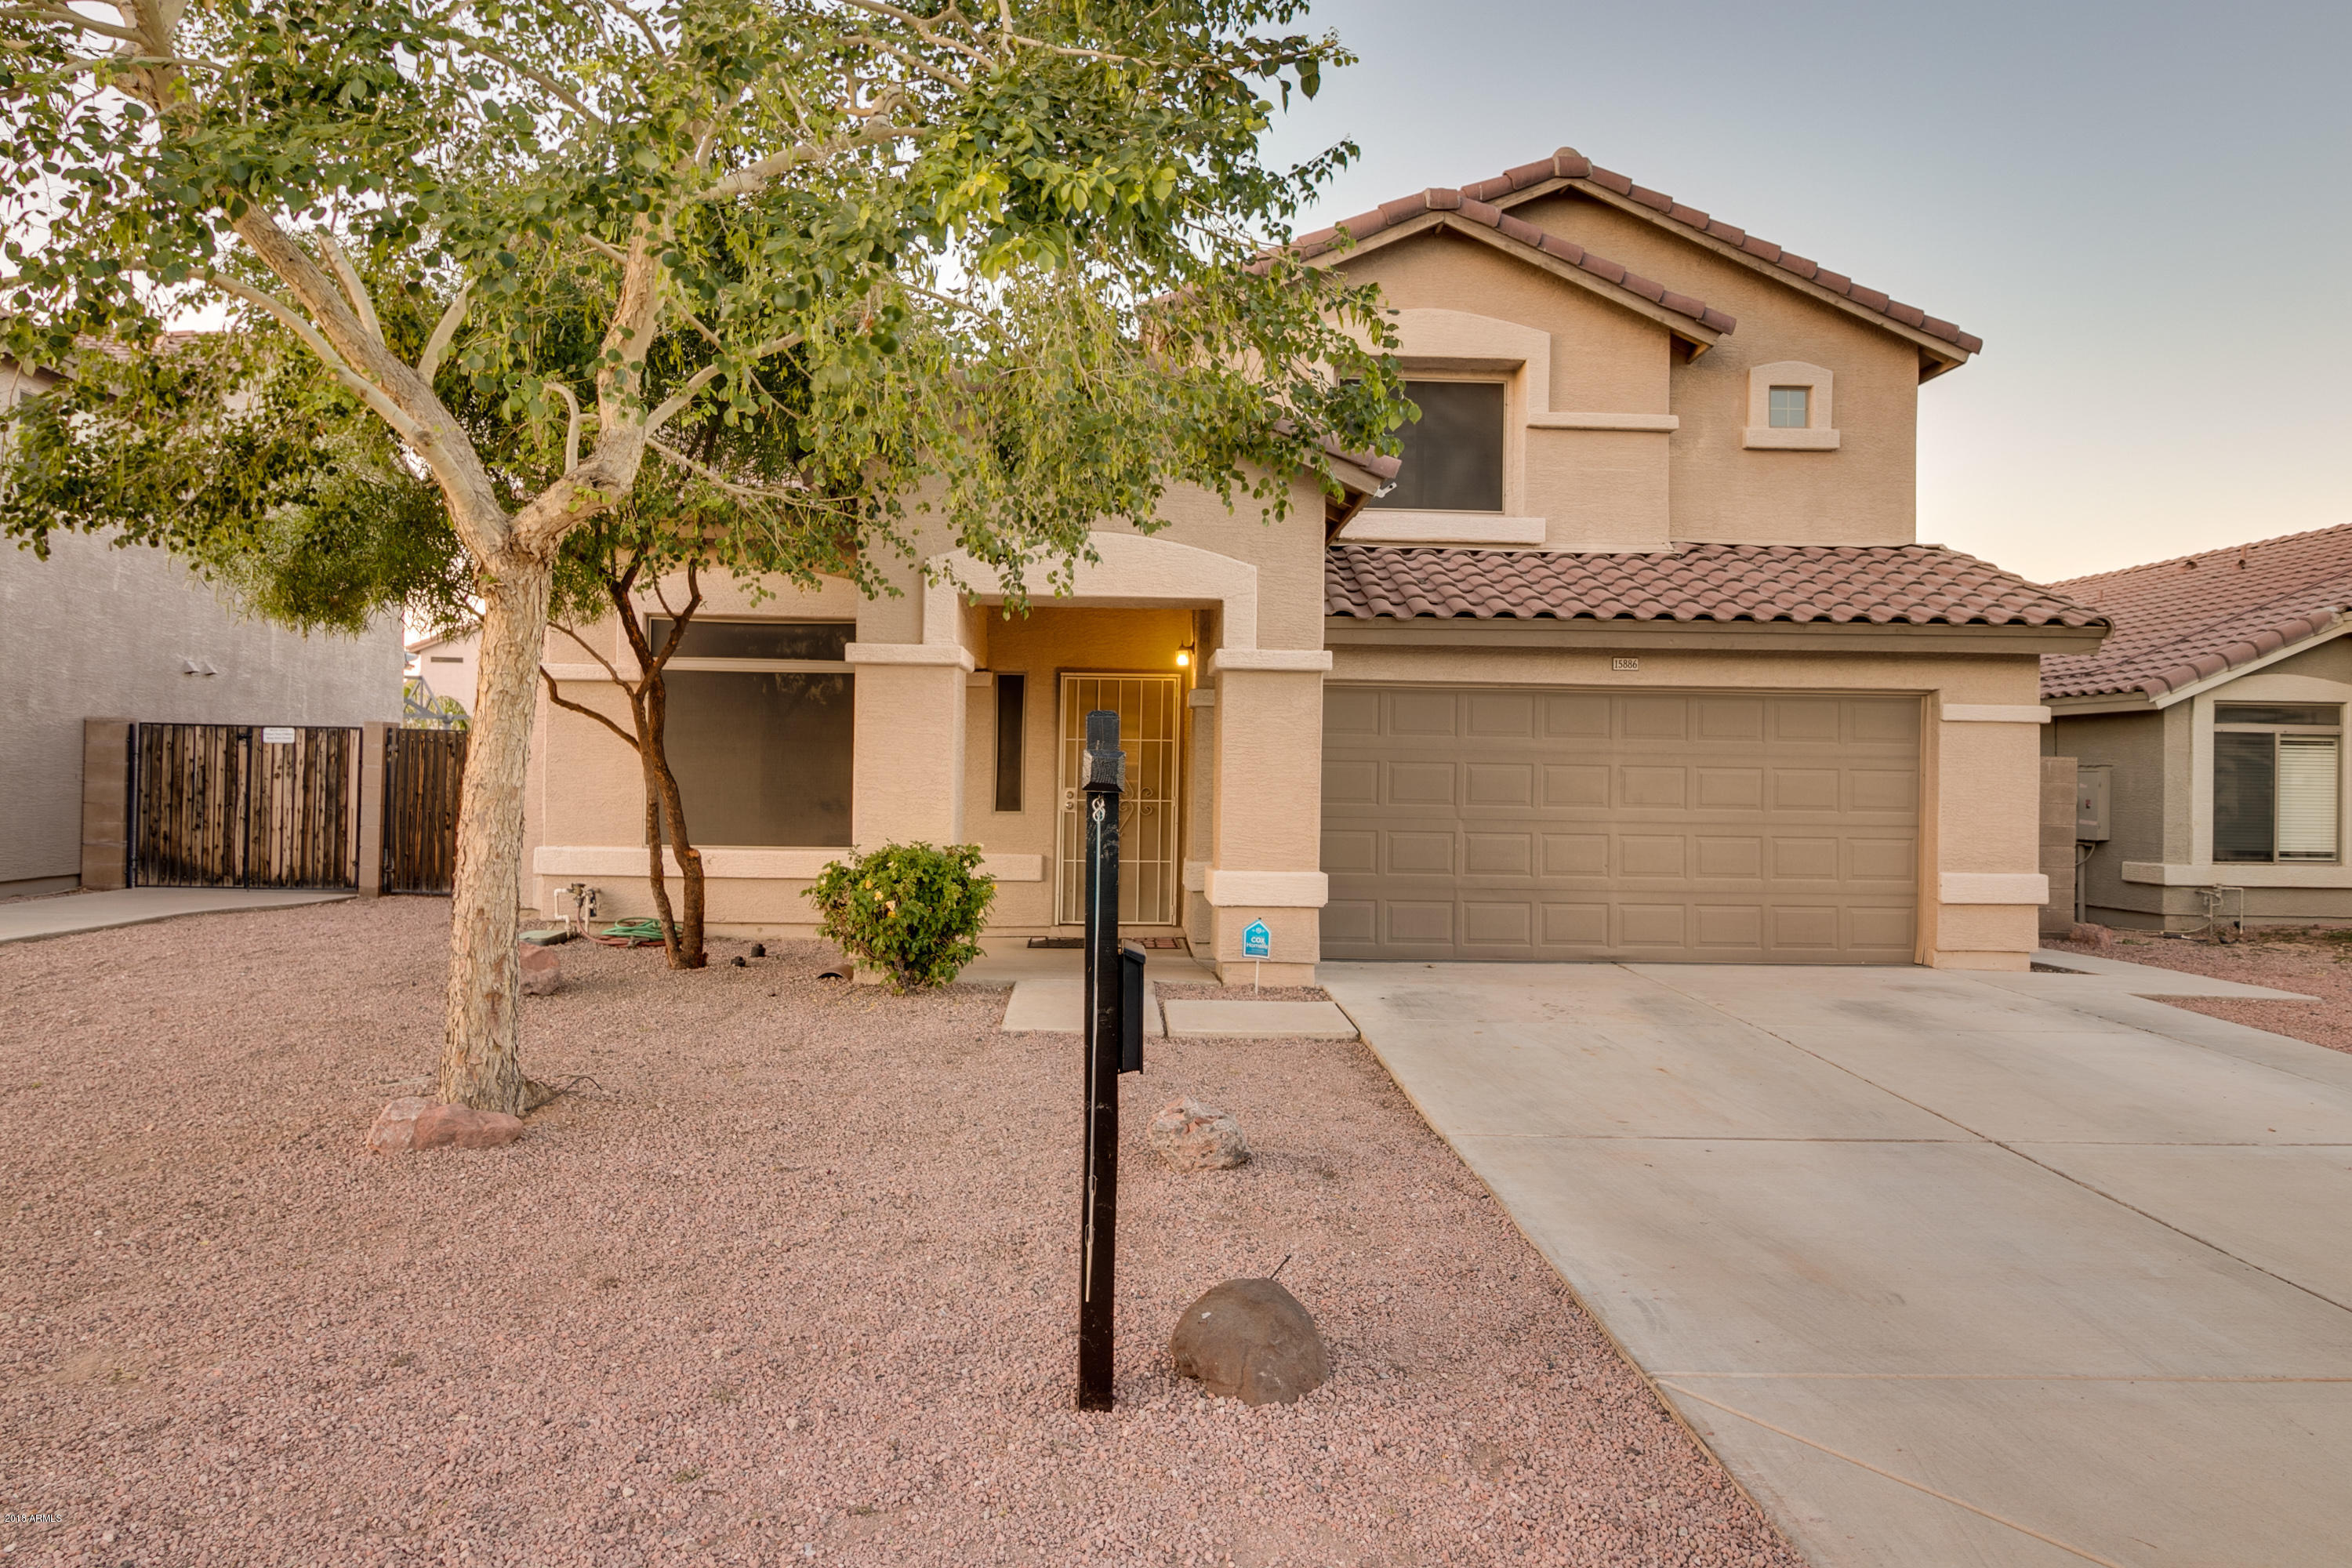 MLS 5846666 15886 W STATLER Street, Surprise, AZ 85374 Surprise AZ Mountain Vista Ranch